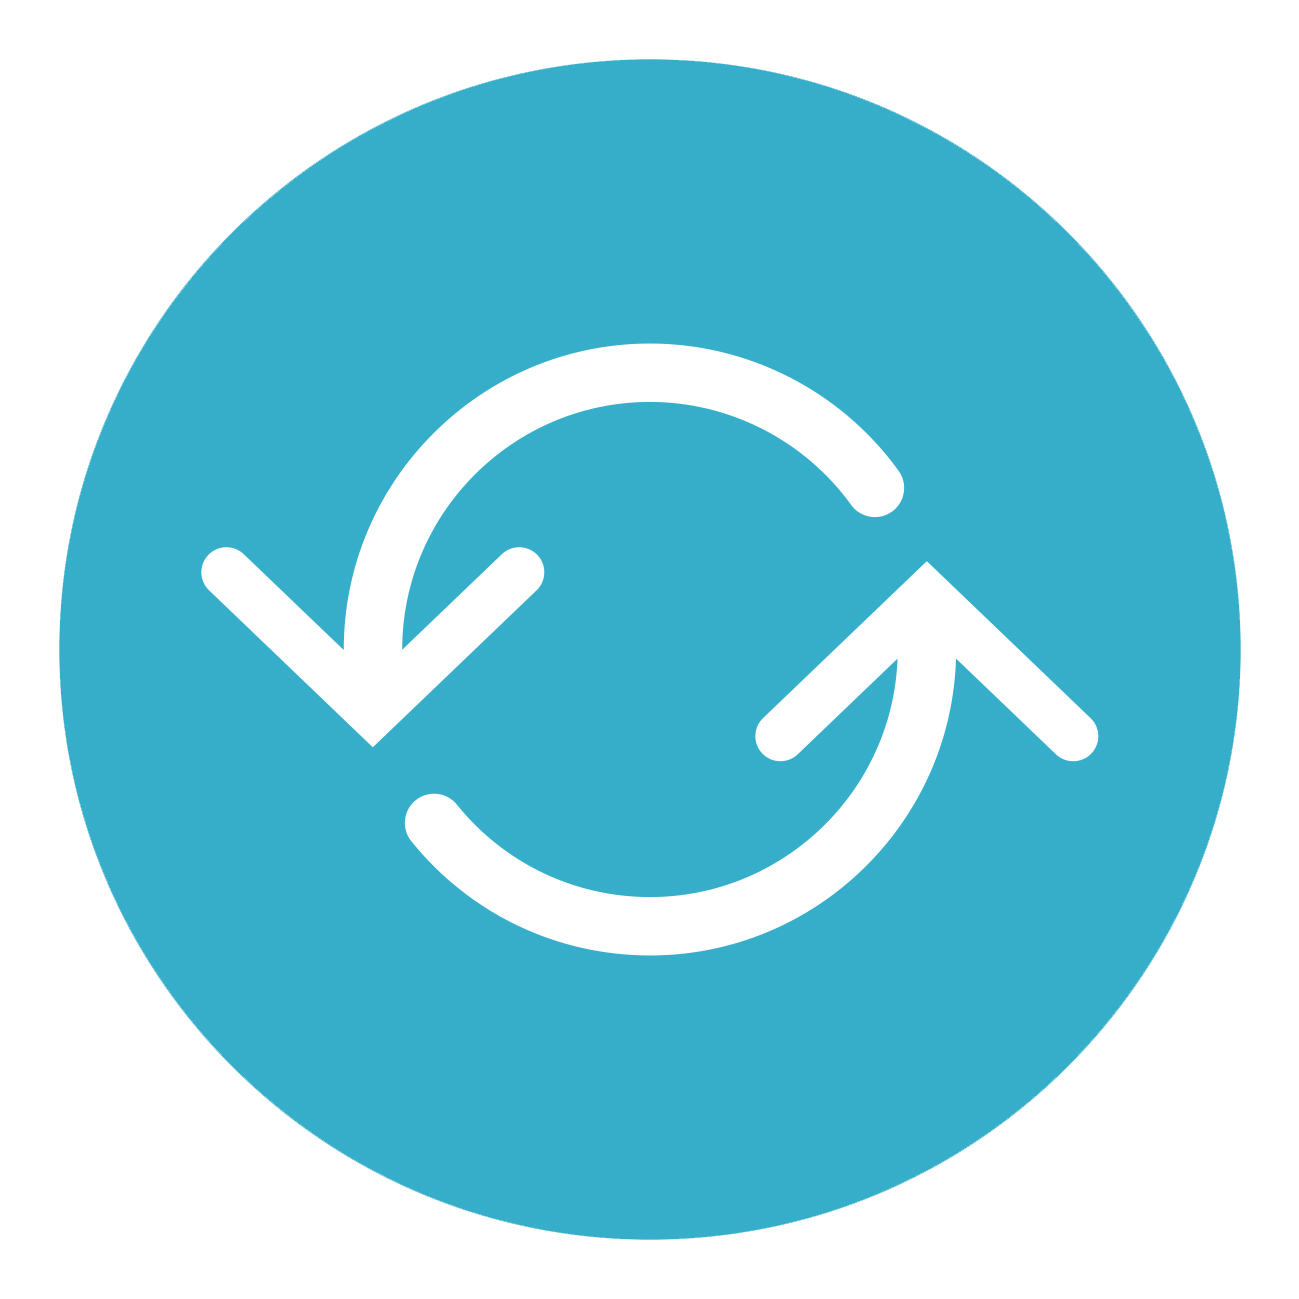 Change Management Icon